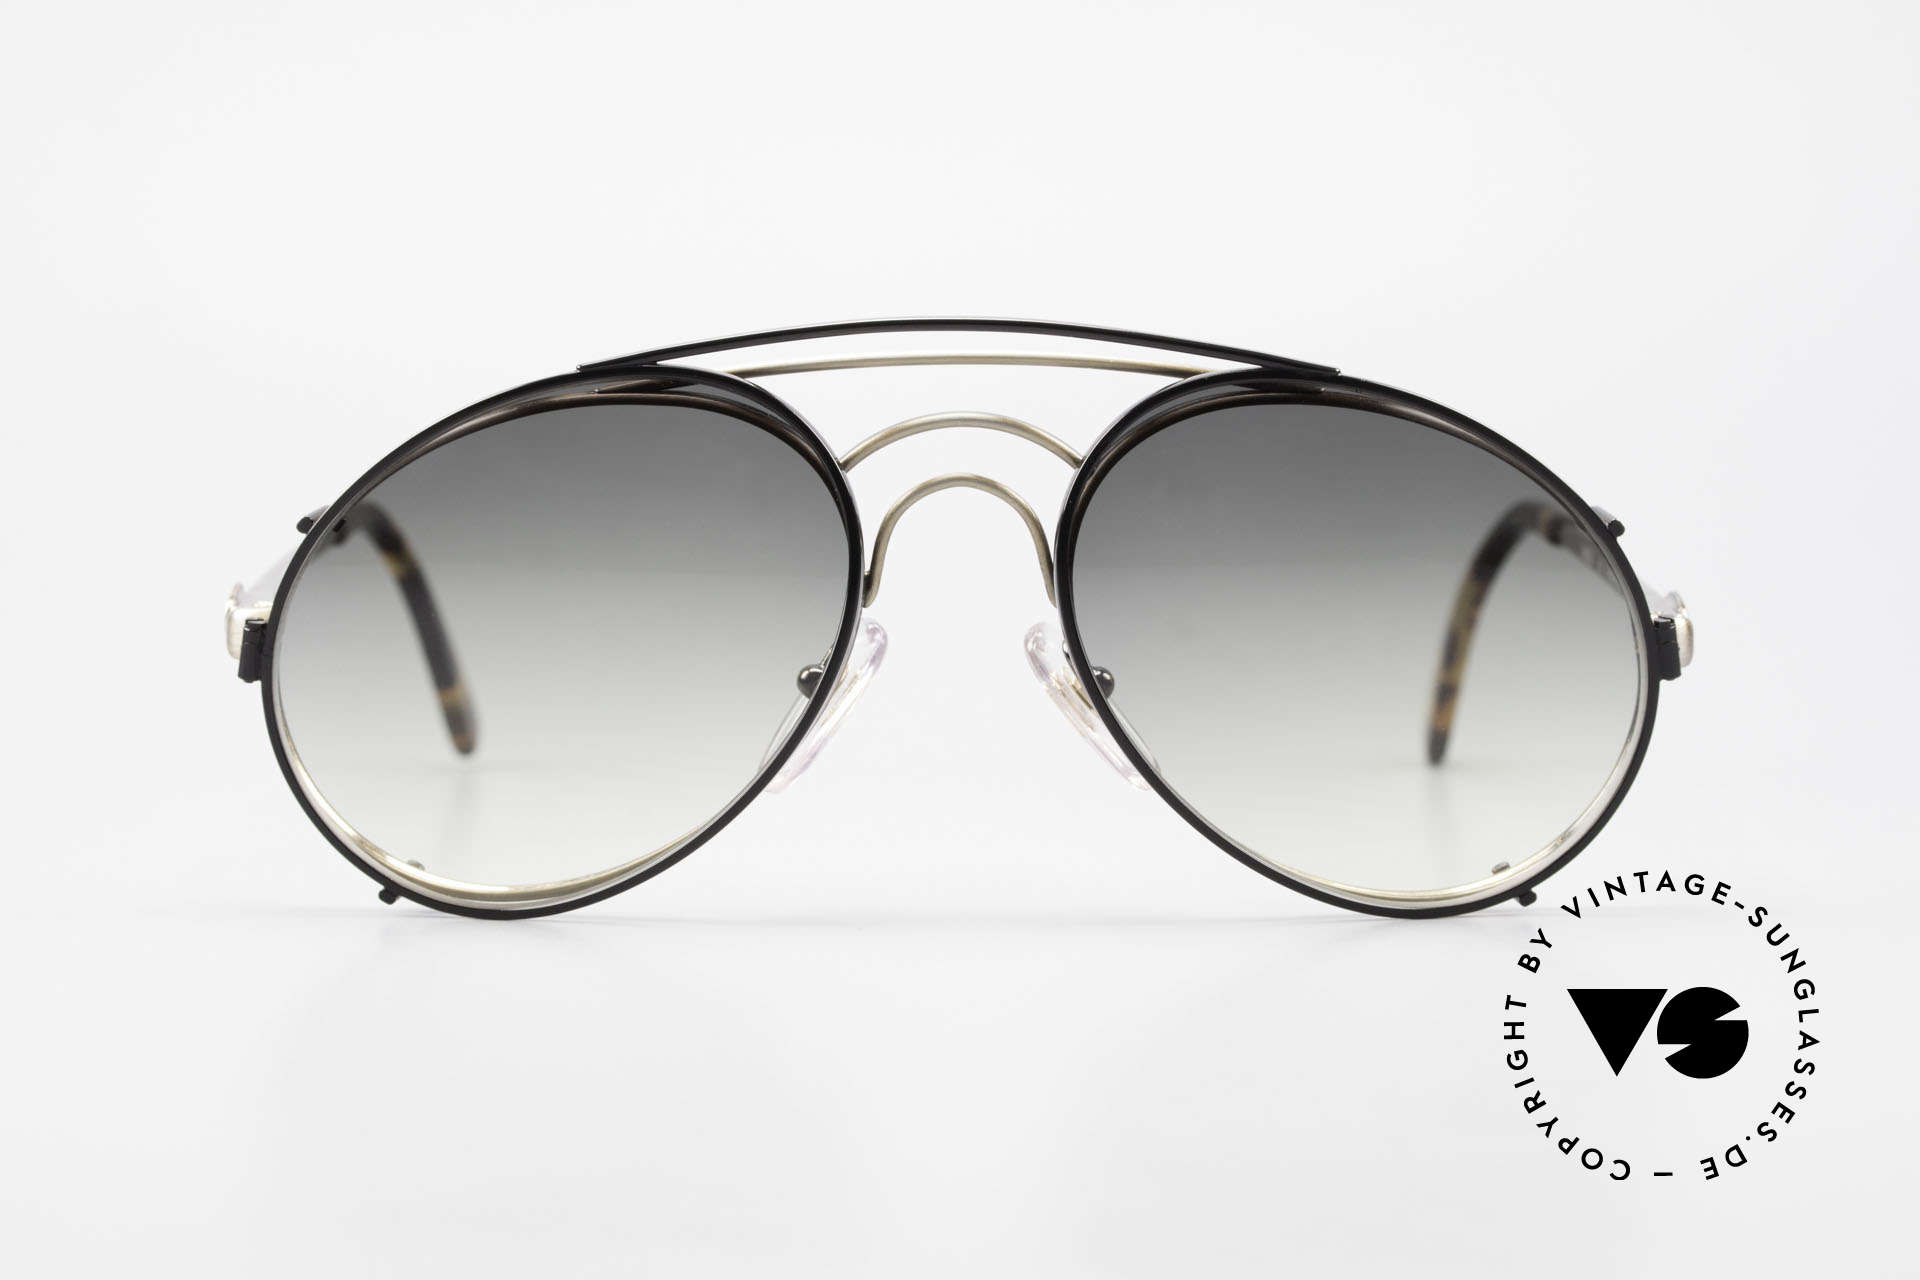 Bugatti 07823 Old 80's Glasses With Sun Clip, distinctive Bugatti 'tear drop' shape; in 52mm size, Made for Men